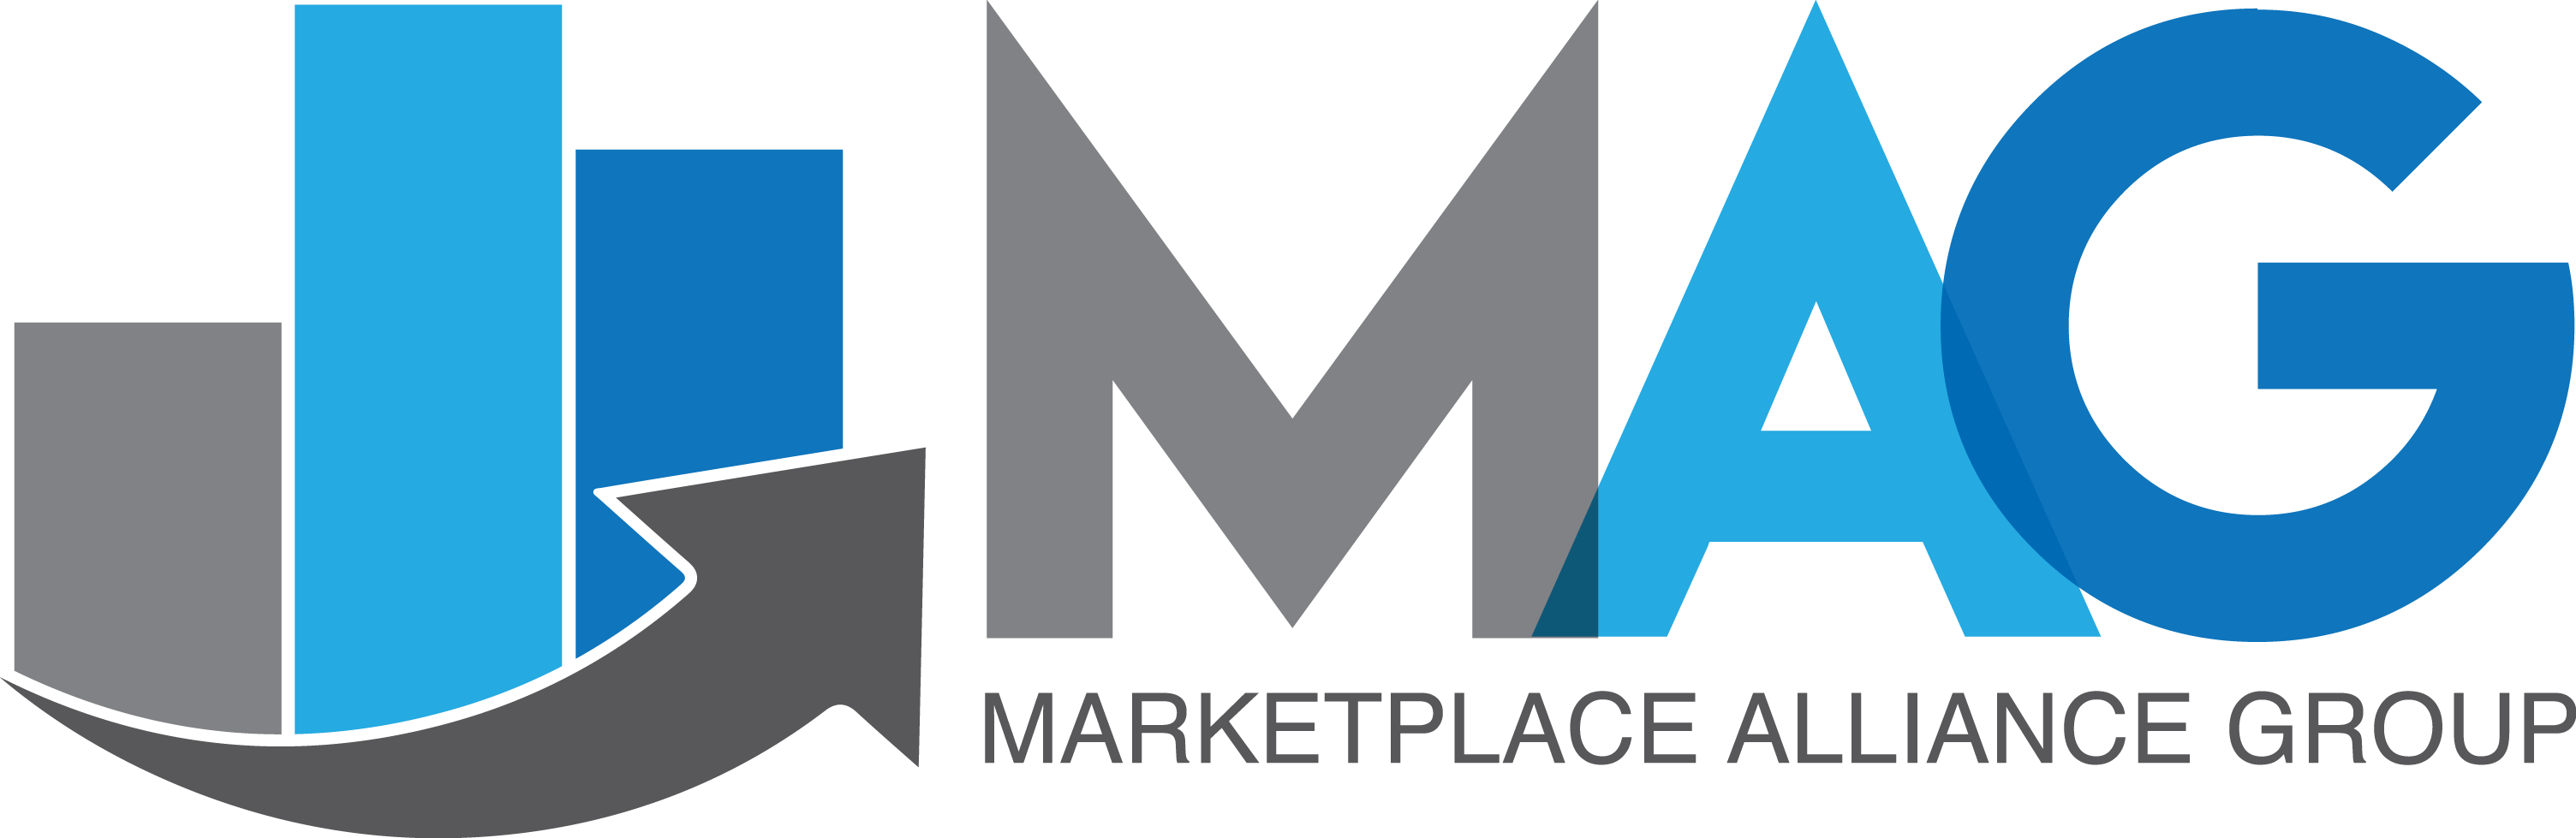 The Marketplace Alliance Group